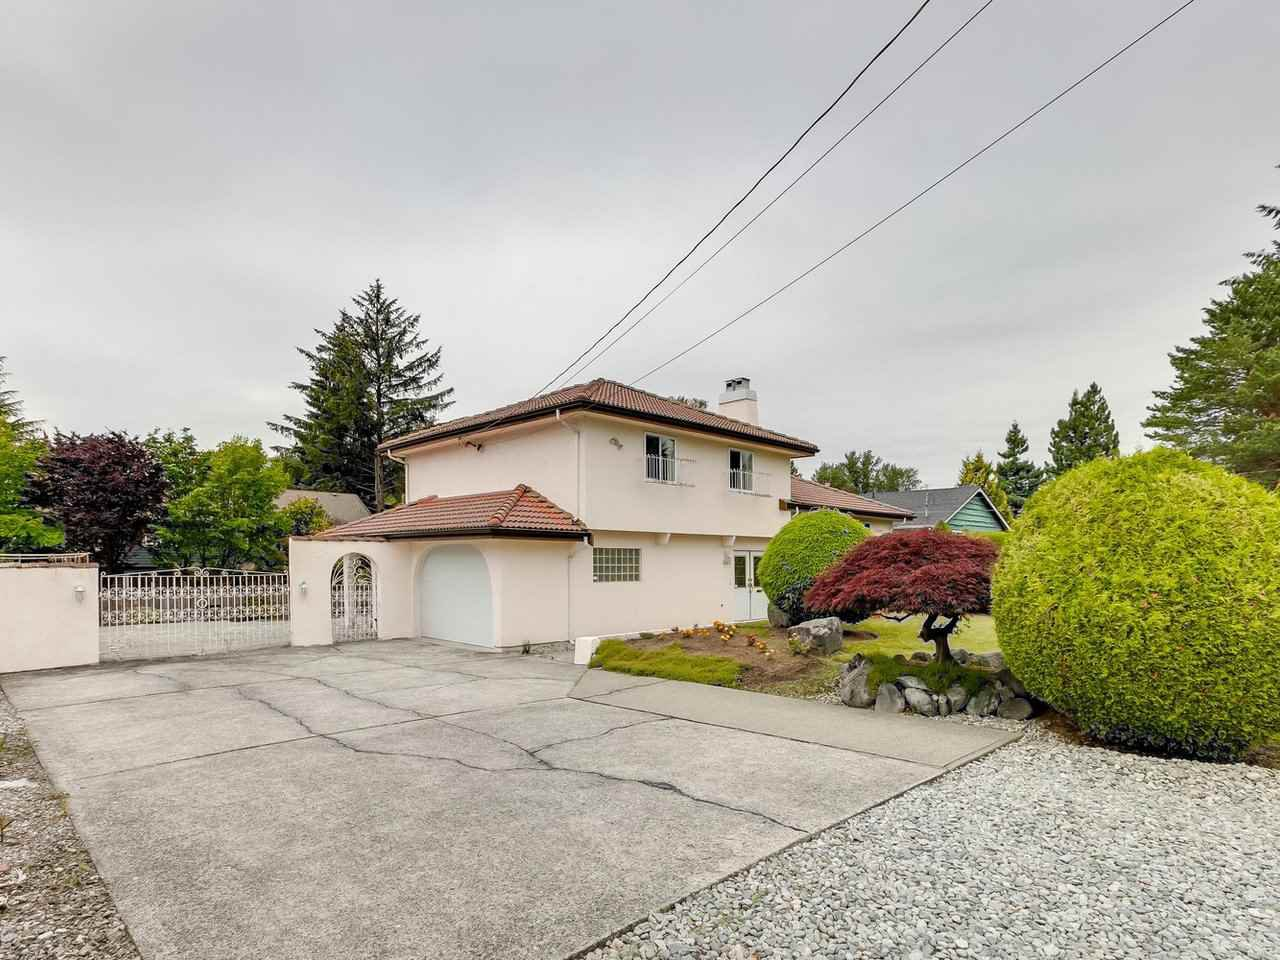 Main Photo: 3565 CHRISDALE Avenue in Burnaby: Government Road House for sale (Burnaby North)  : MLS®# R2467805